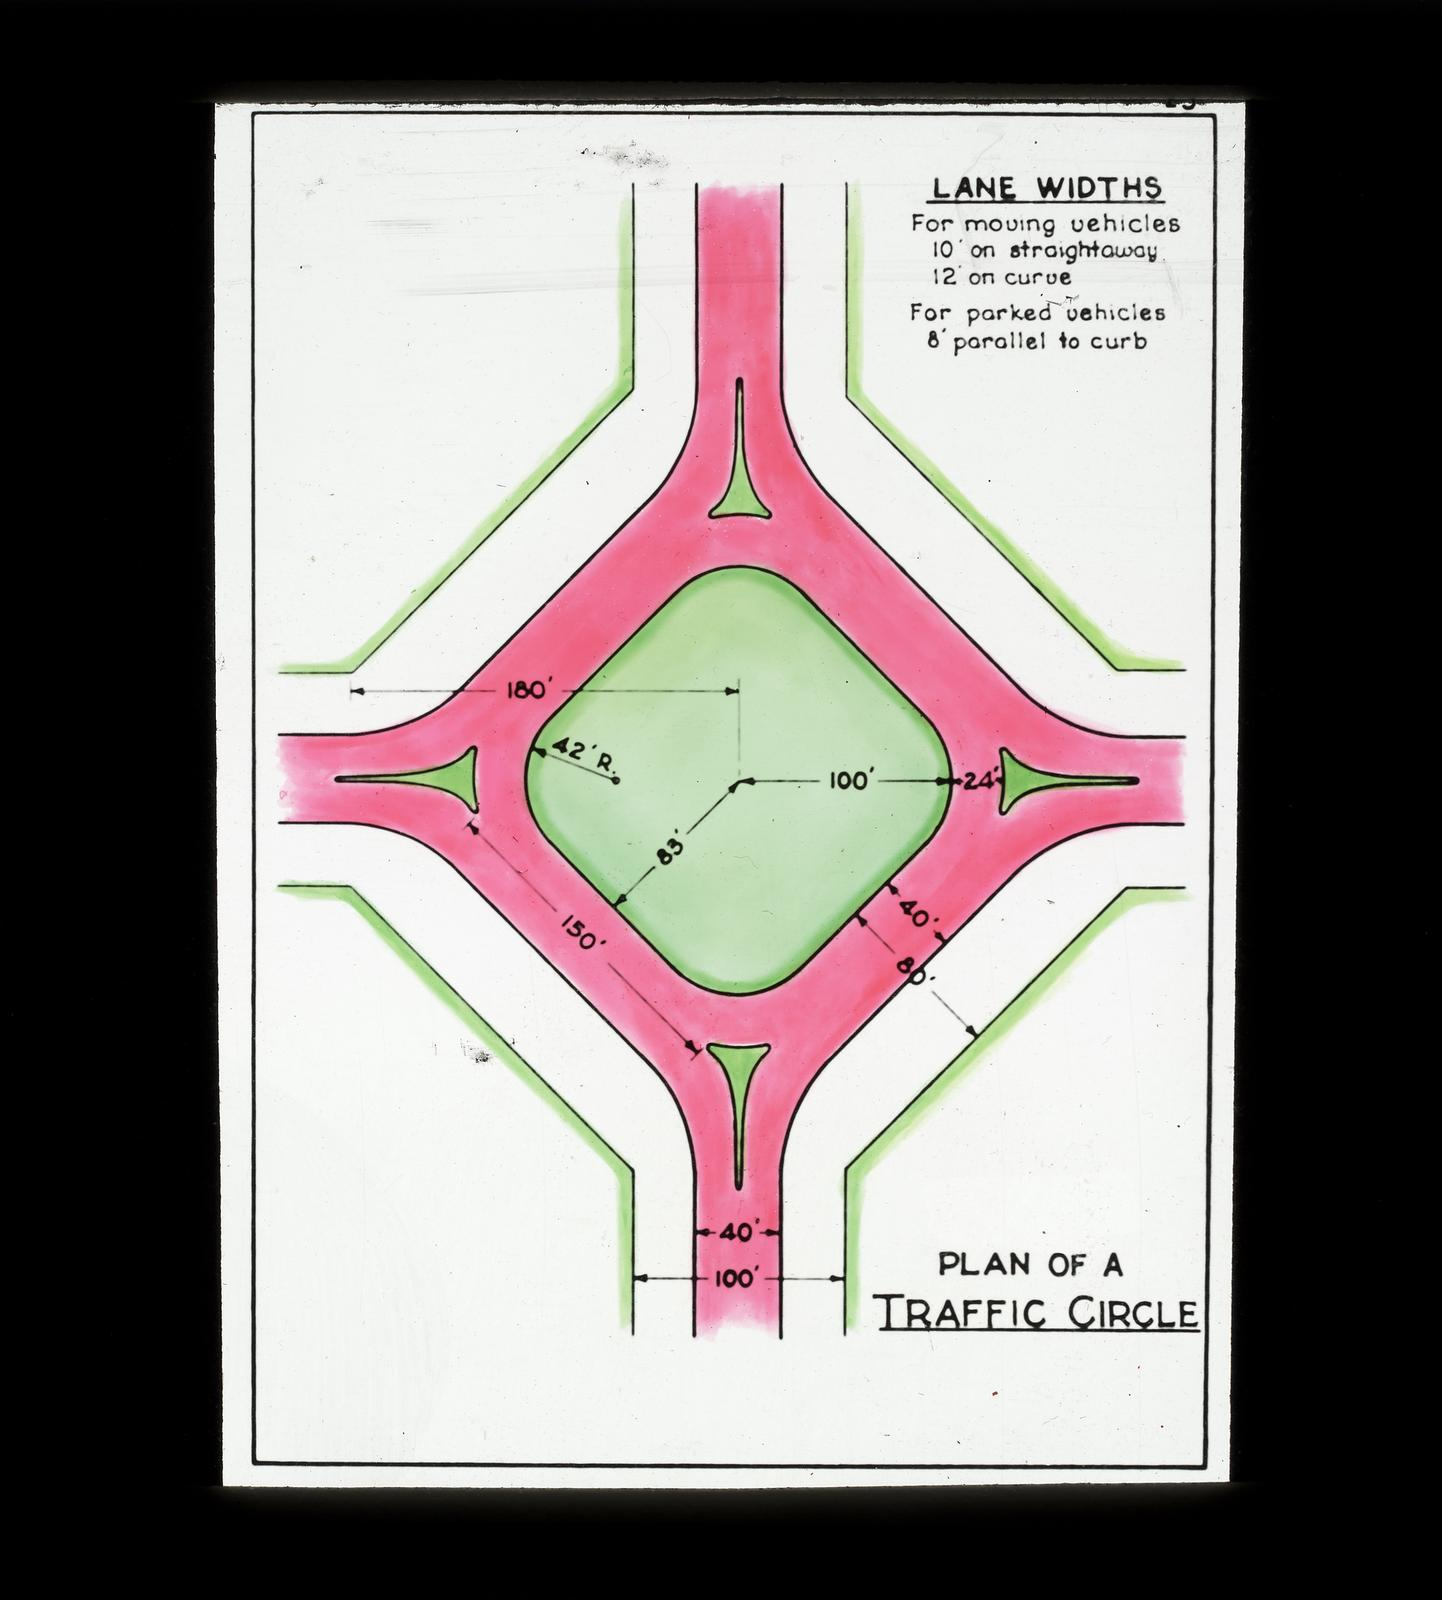 Highway Design and X Section: Plan of a Traffic Circle